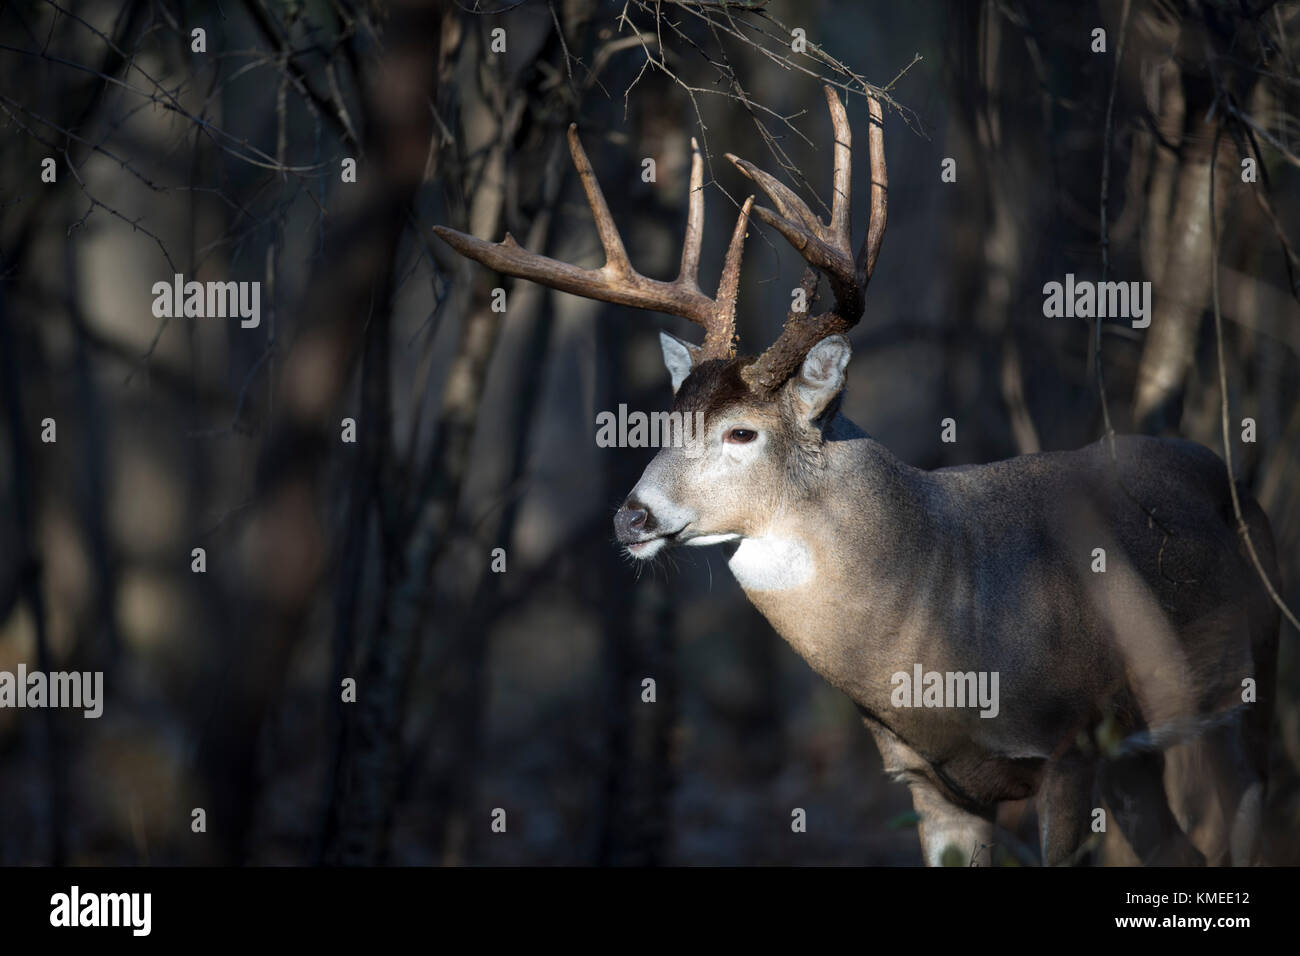 A large buck whitetail deer with his head in a sunbeam. - Stock Image